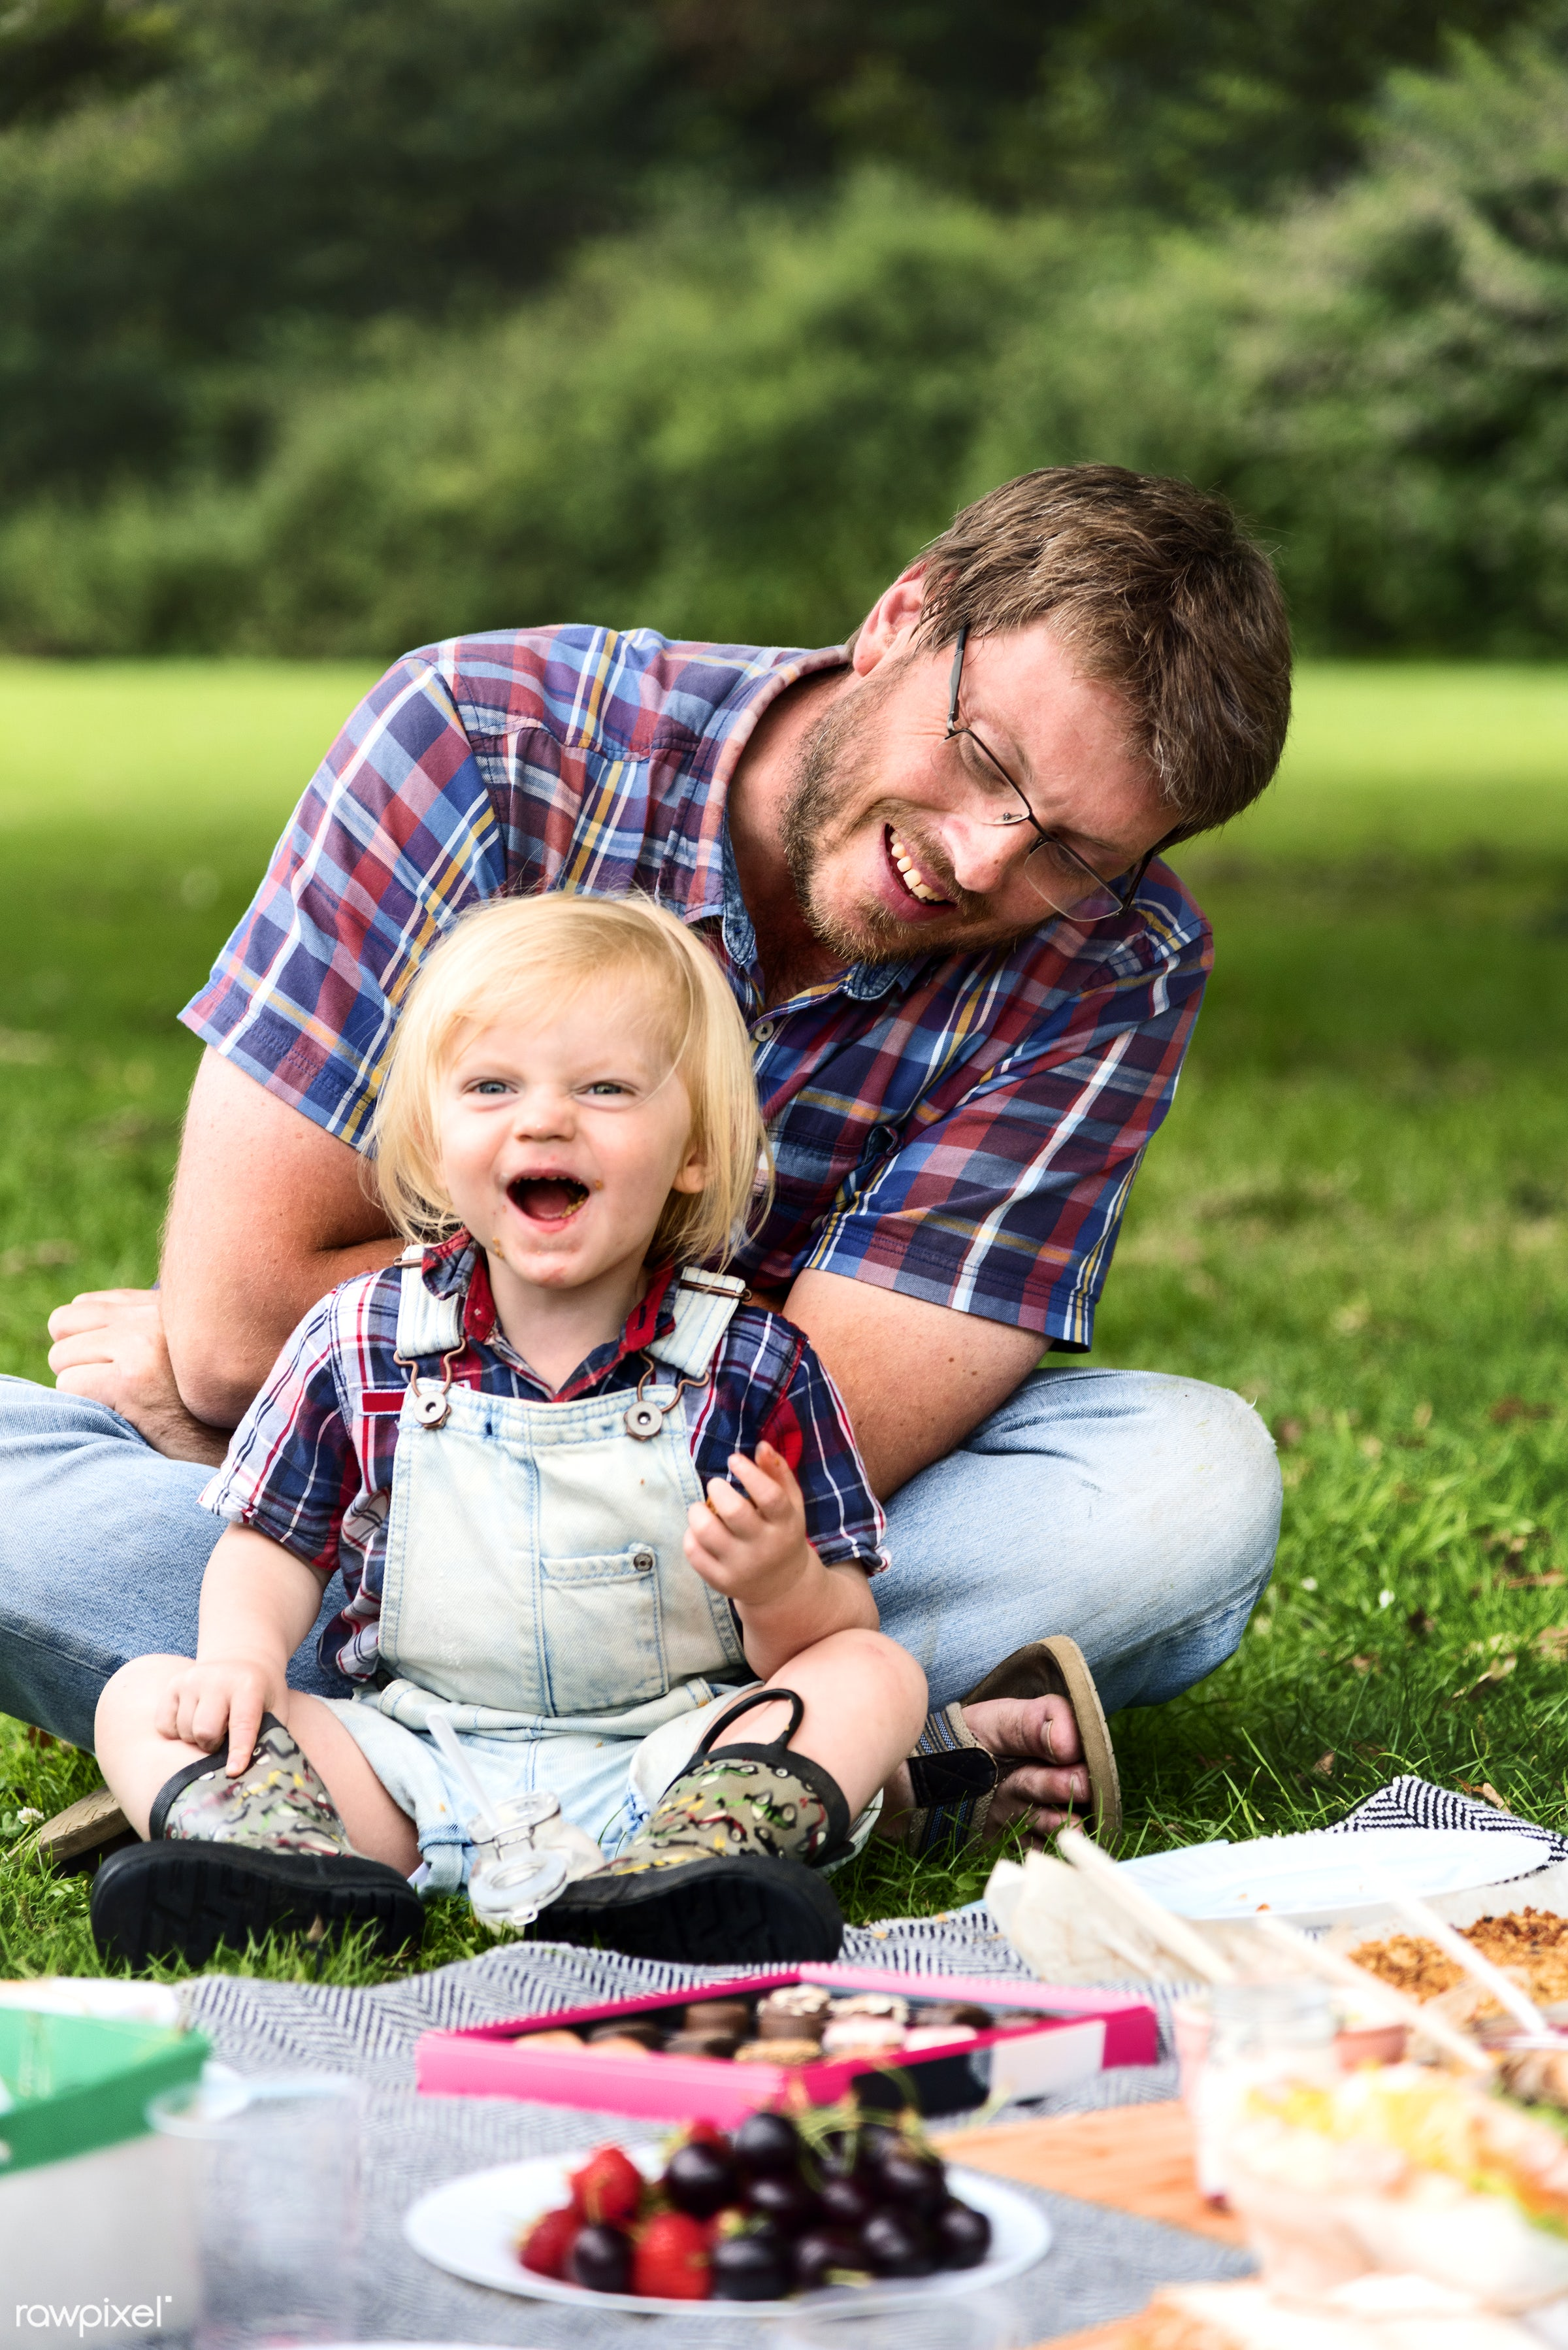 bonding, boy, care, casual, cheerful, child, childhood, chocolate, eating, enjoyment, environmental, family, father, field,...